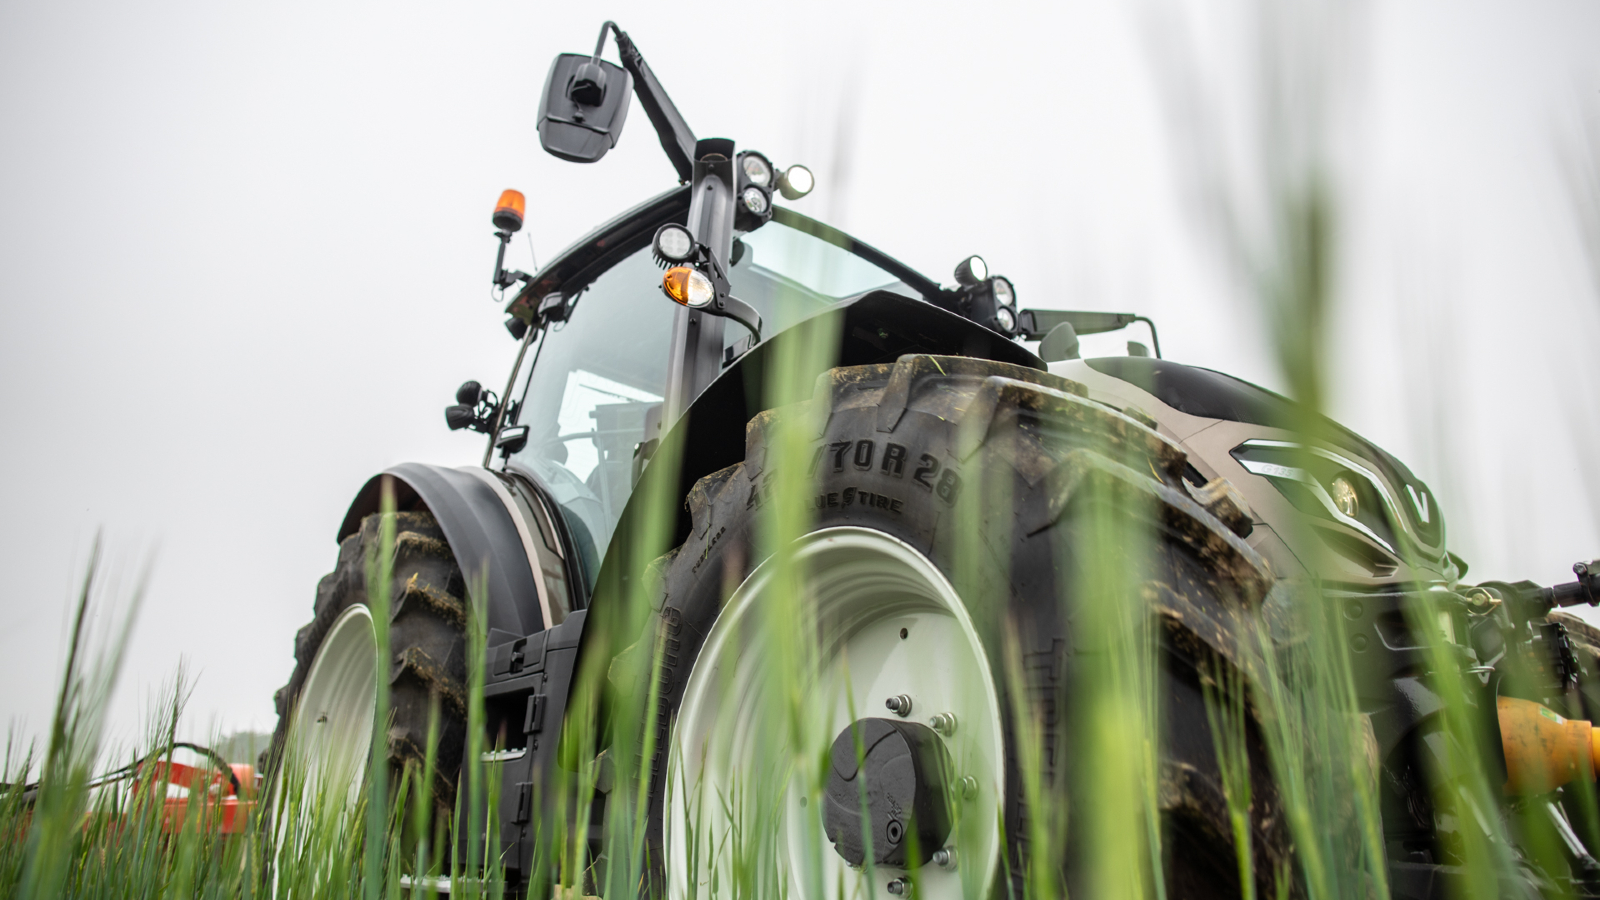 Valtra G Series tractor in the field